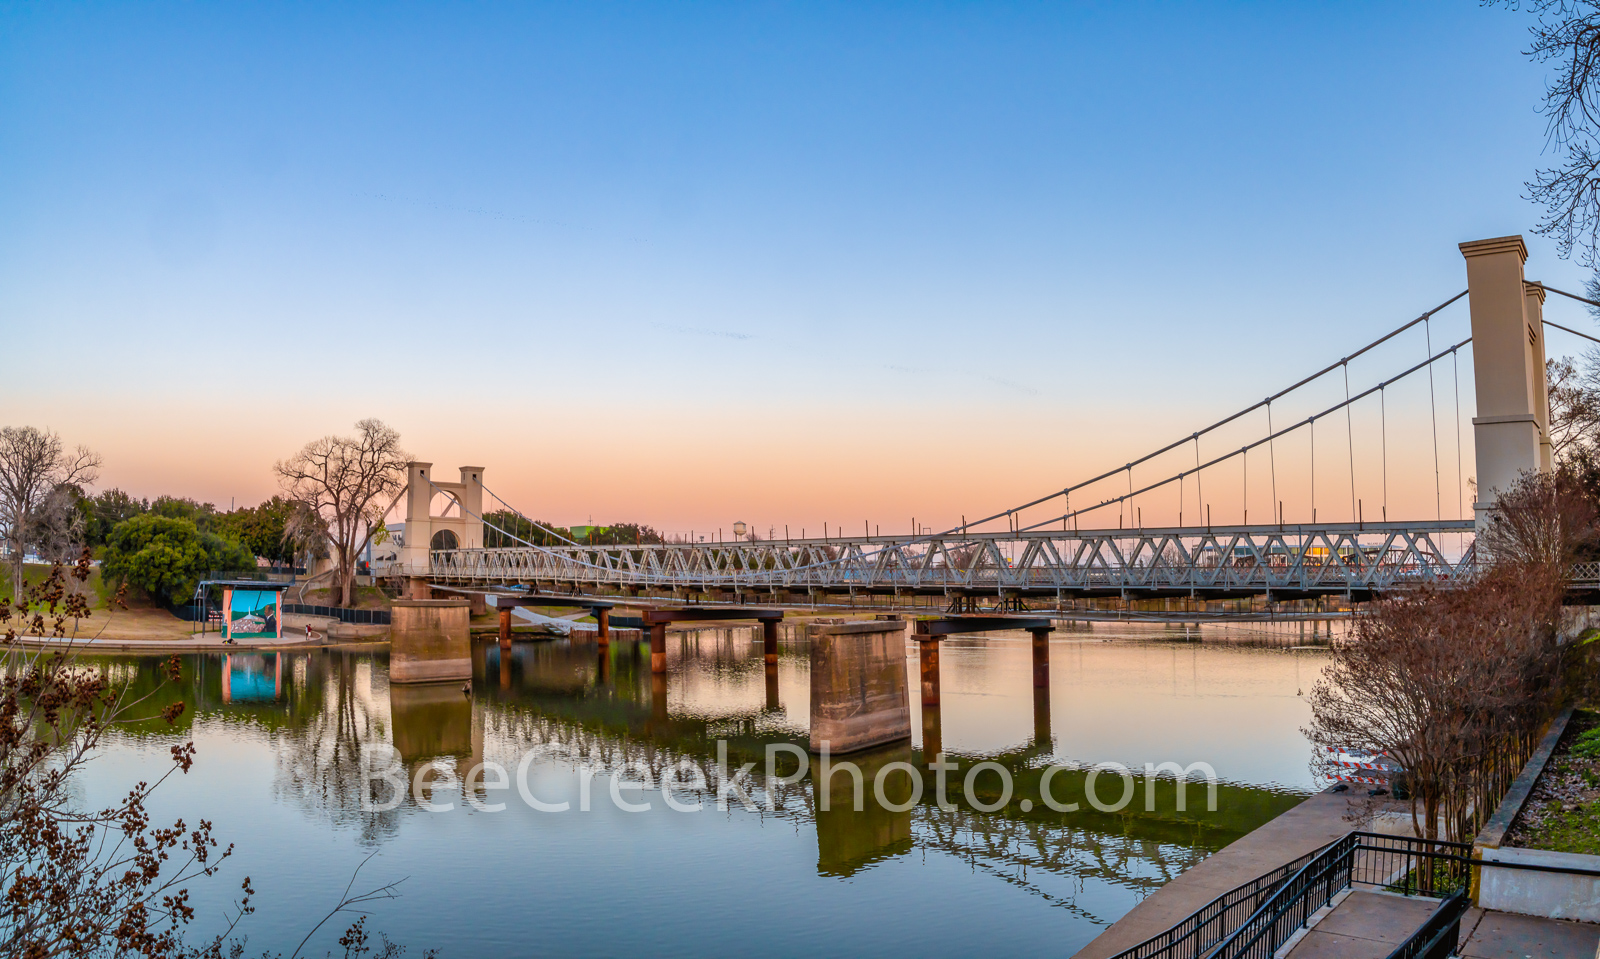 waco, downtown waco, waco texas, texas, city of waco, suspension bridge, historic bridge, historic suspension bridge, chisom...